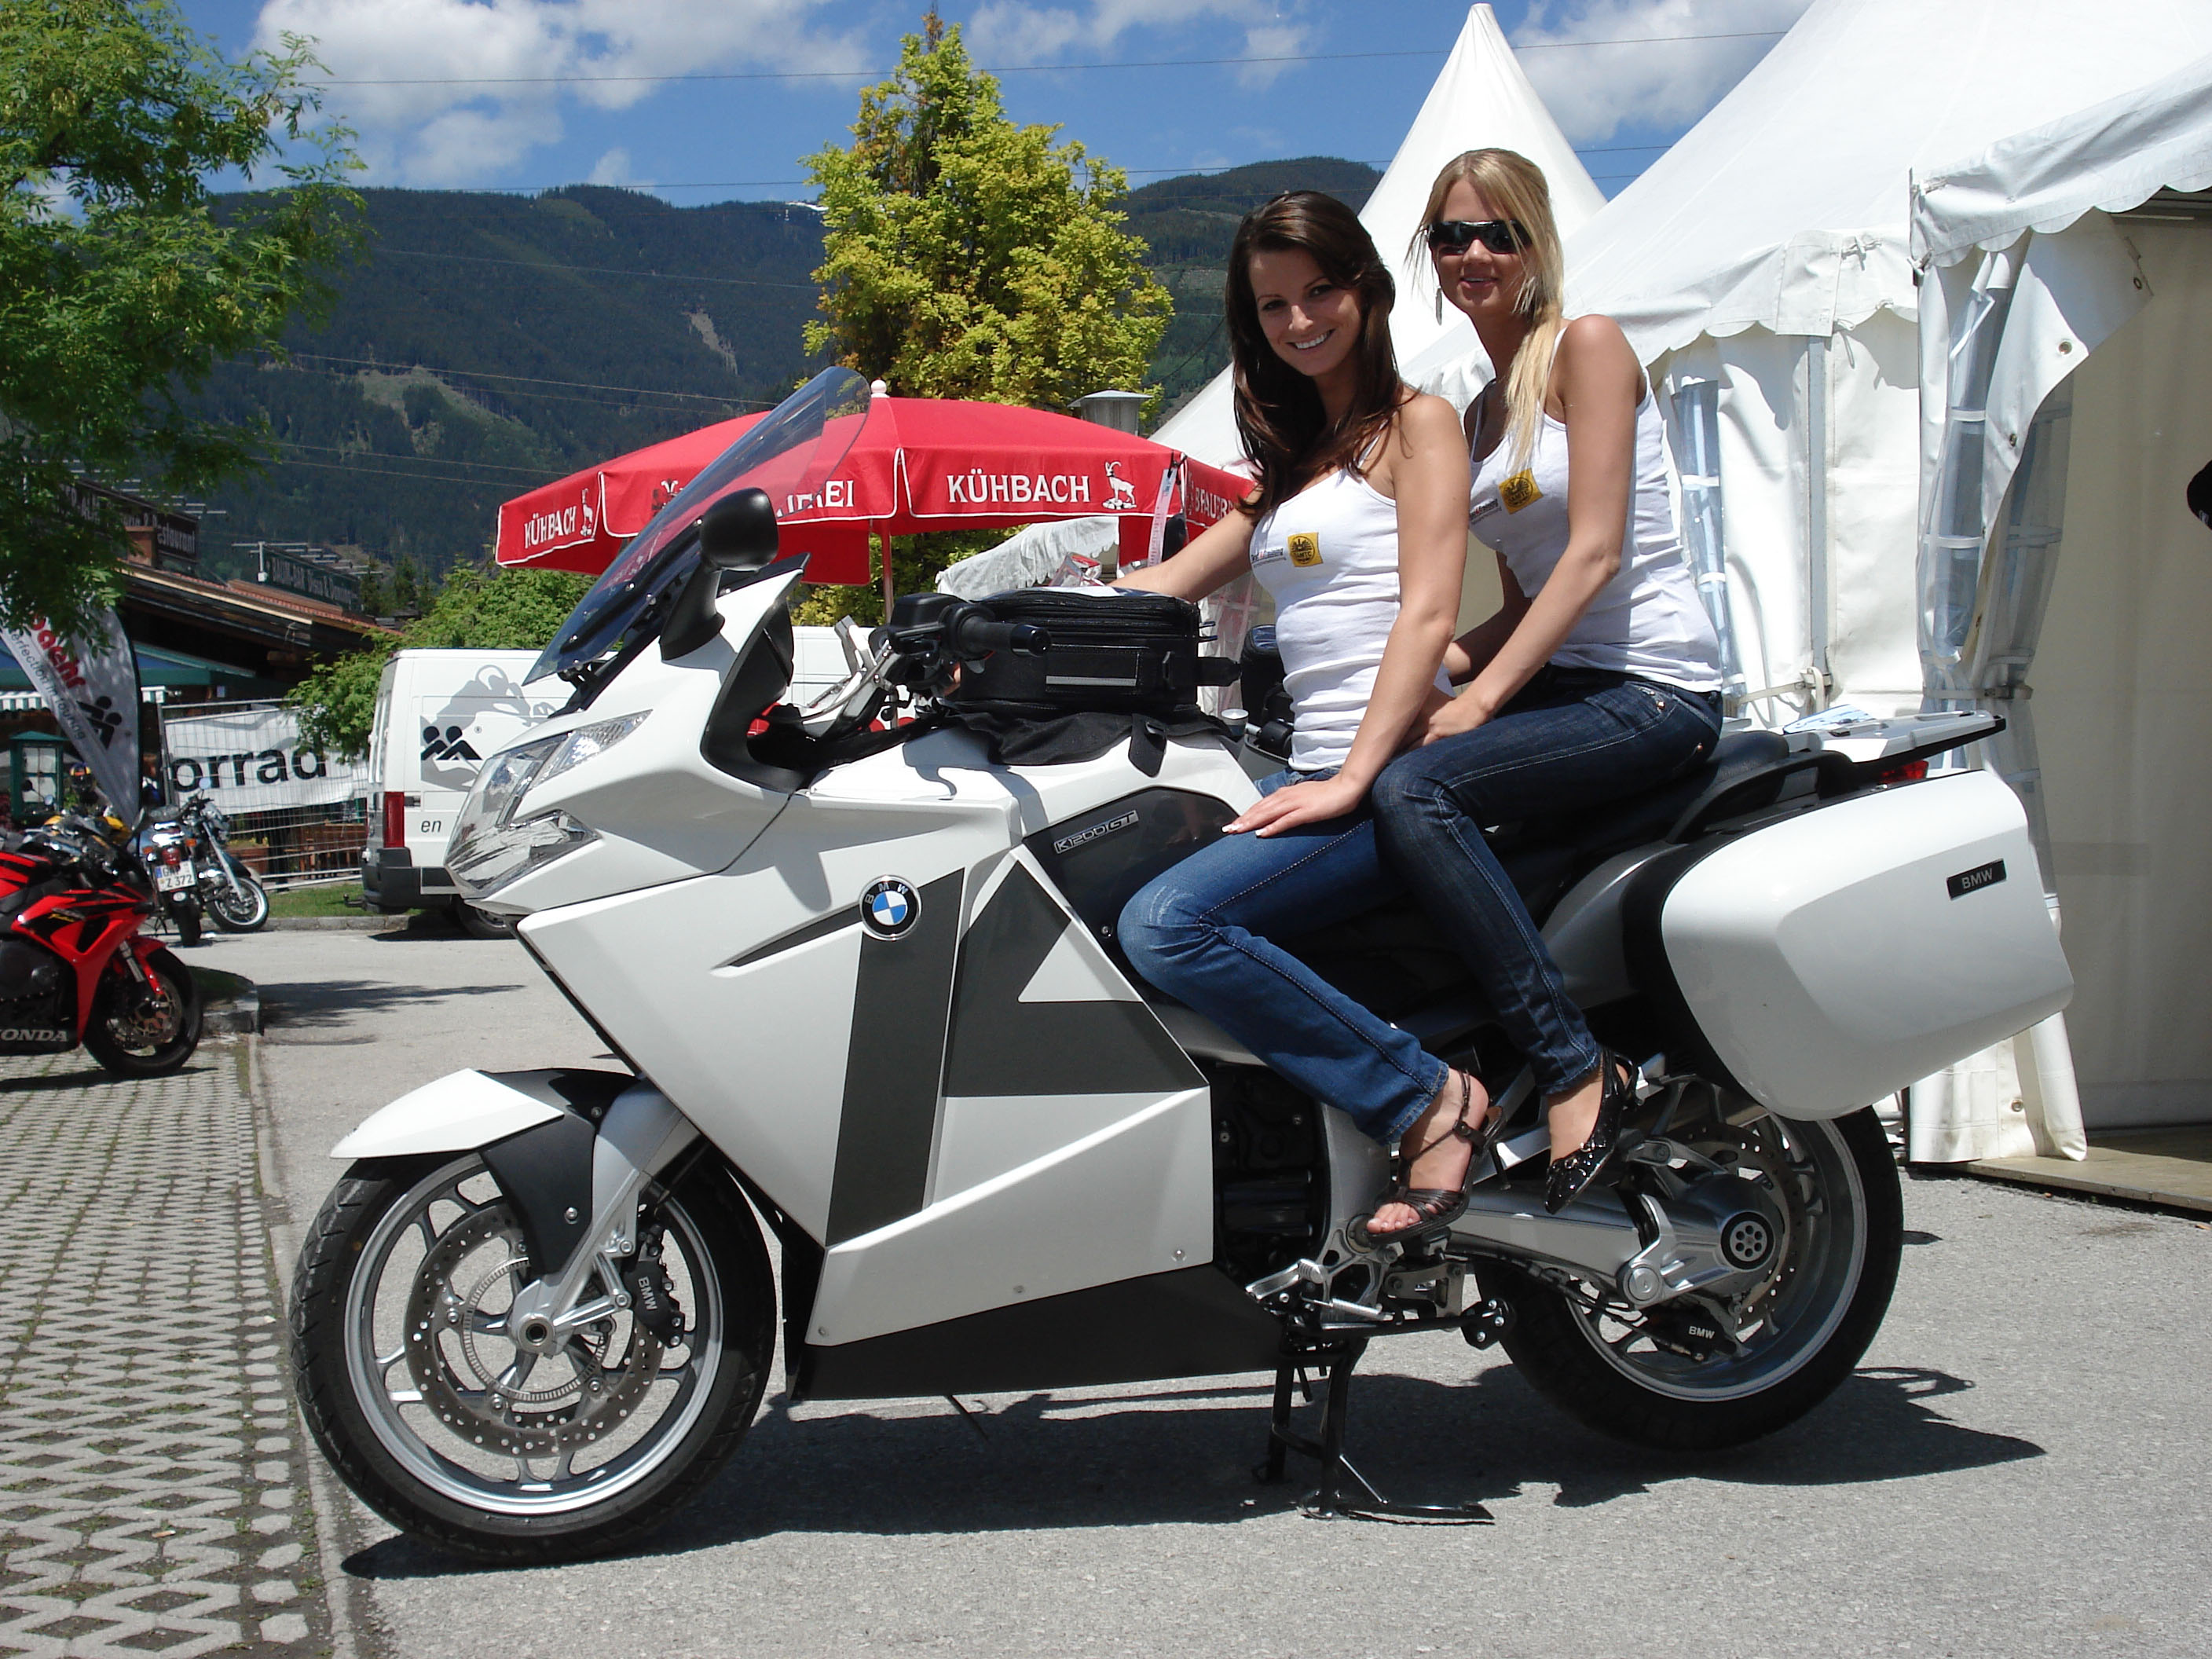 Bmw K1200gt Conversion Perfect Touring Motorcycle Accessory Hornig